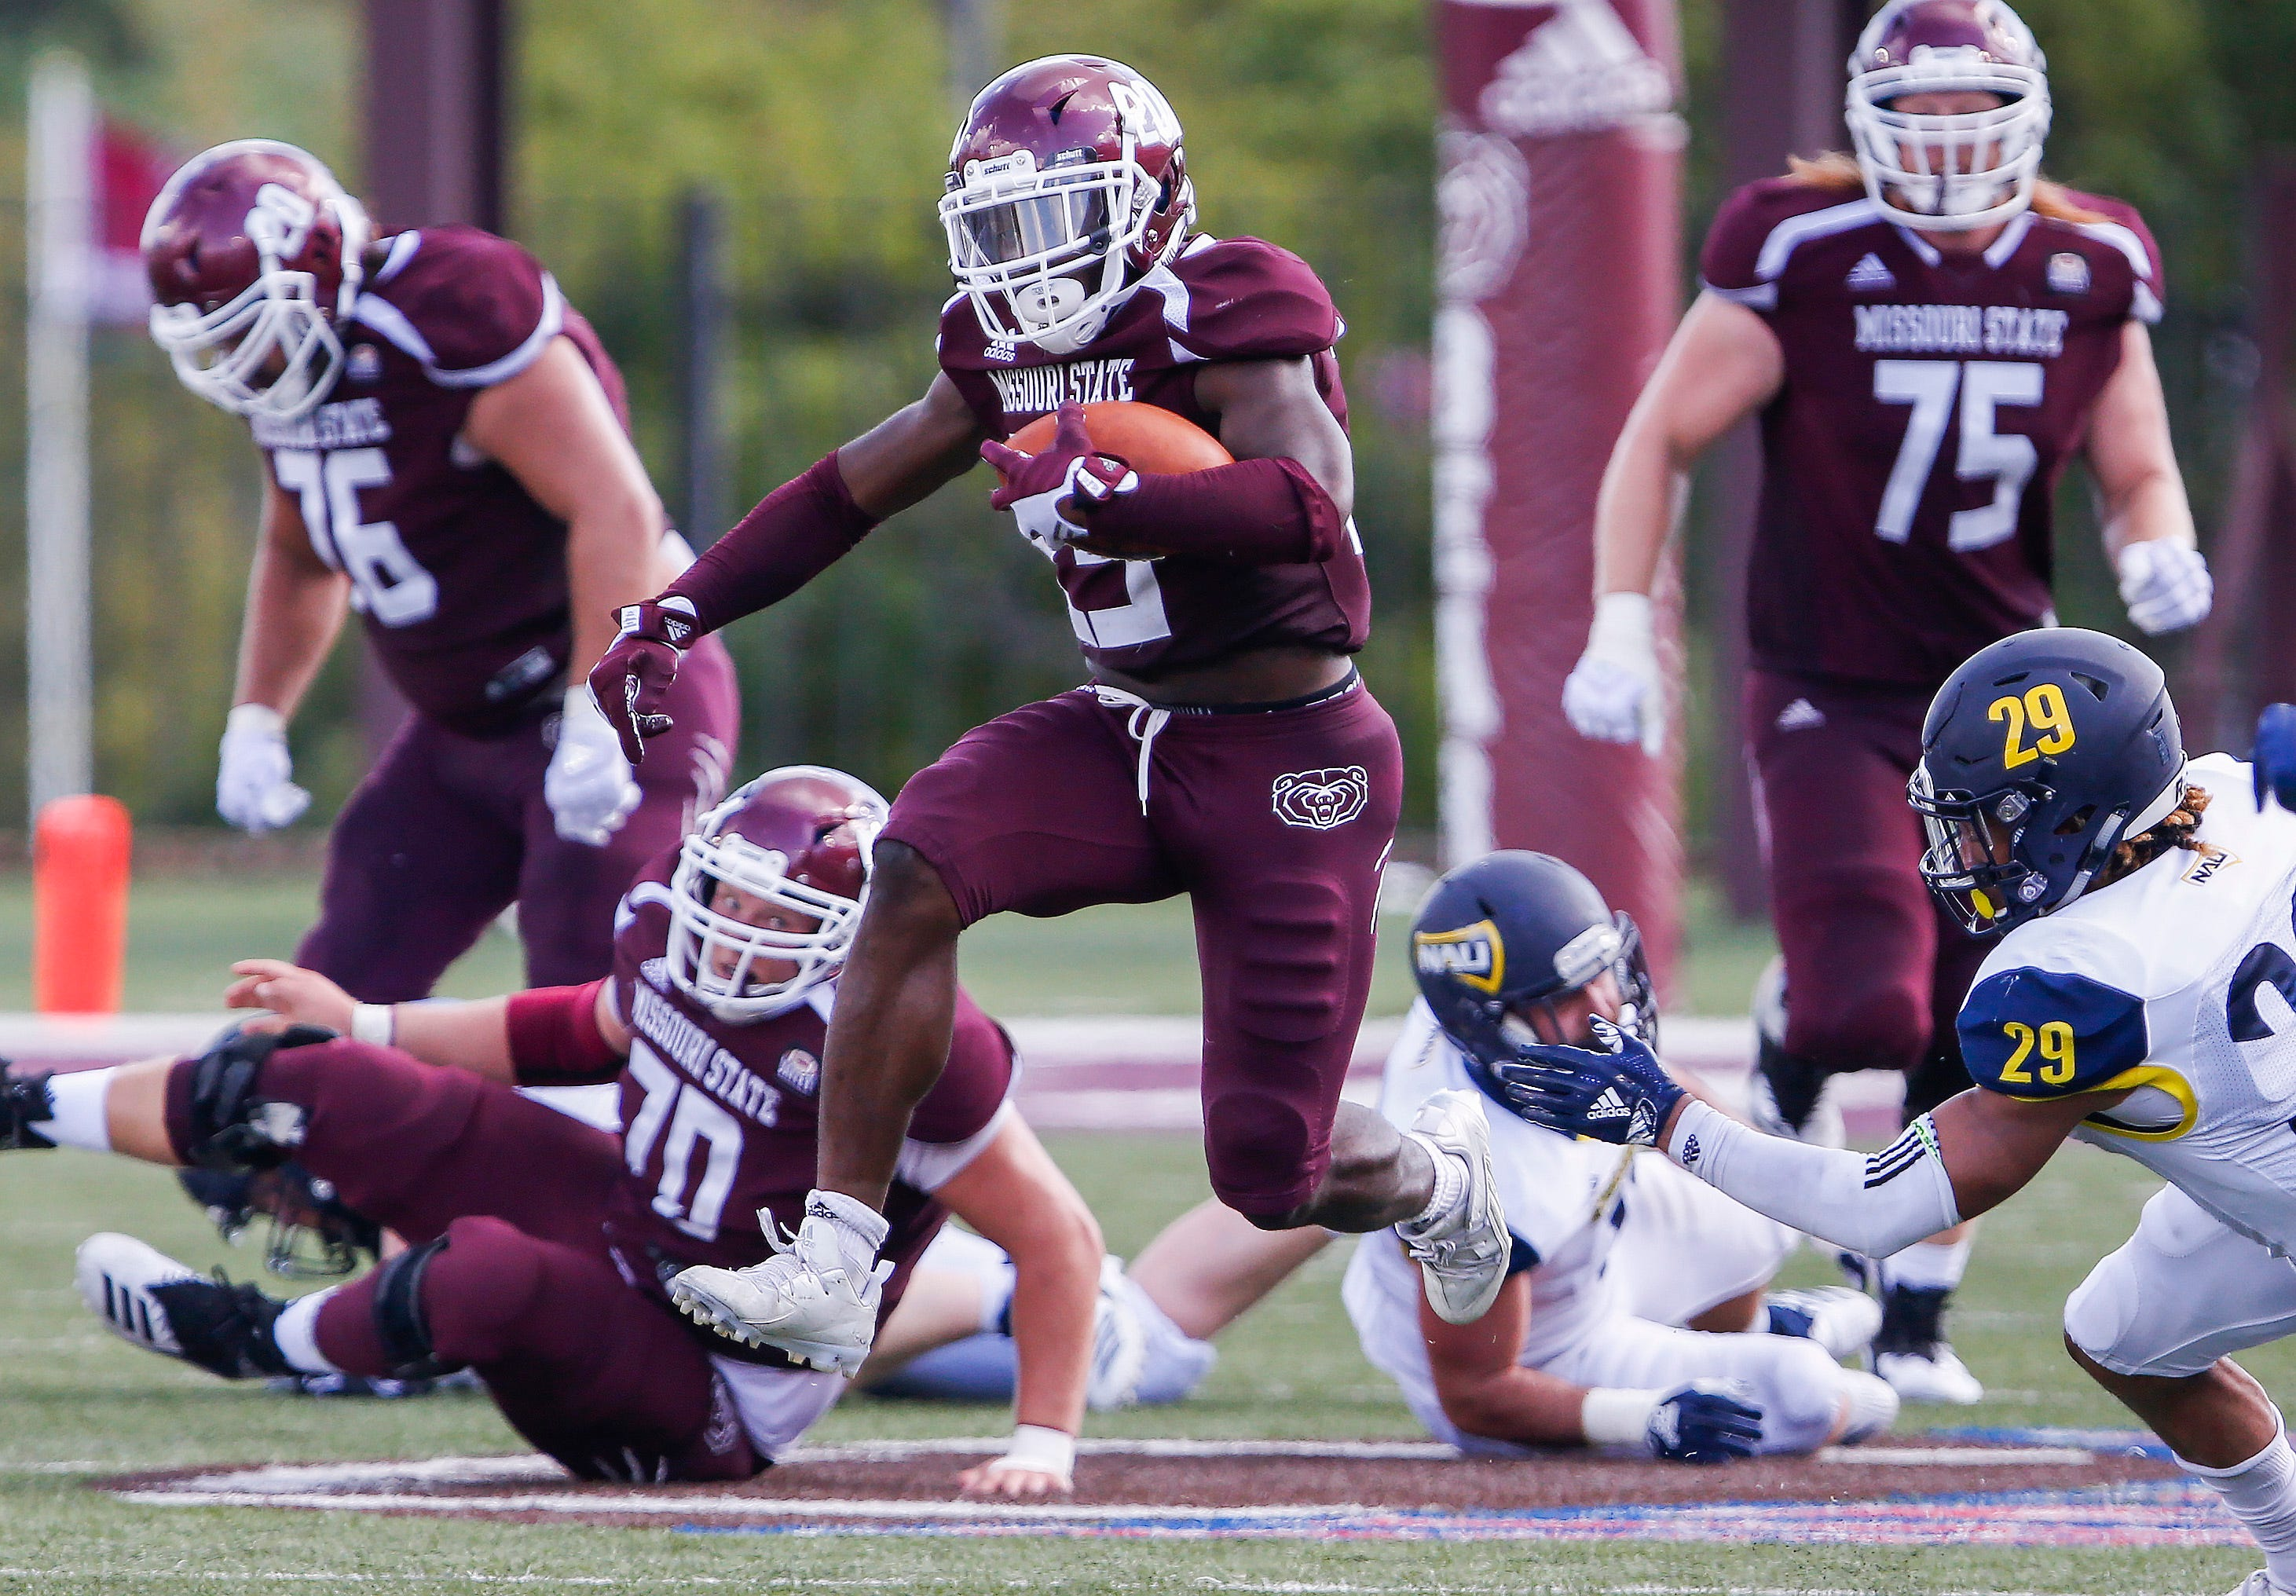 Jason Randall runs with the ball during Missouri State's game against Northern Arizona at Plaster Stadium on Saturday, Sept. 15, 2018.